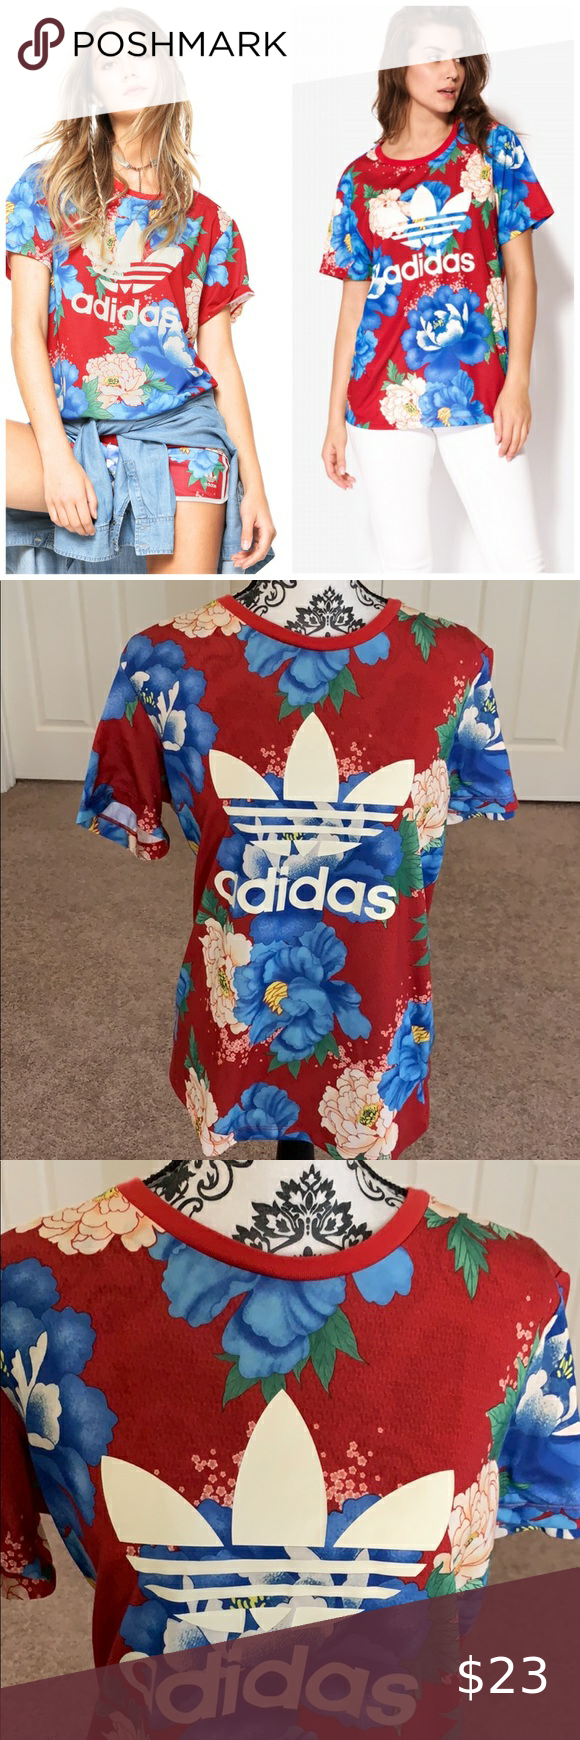 Adidas Floral Chita Tee Adidas Floral Chita Tee With Design Inspirations From Nature Asian Art And Island Life This Coll Adidas Floral Clothes Design Tees [ 1740 x 580 Pixel ]